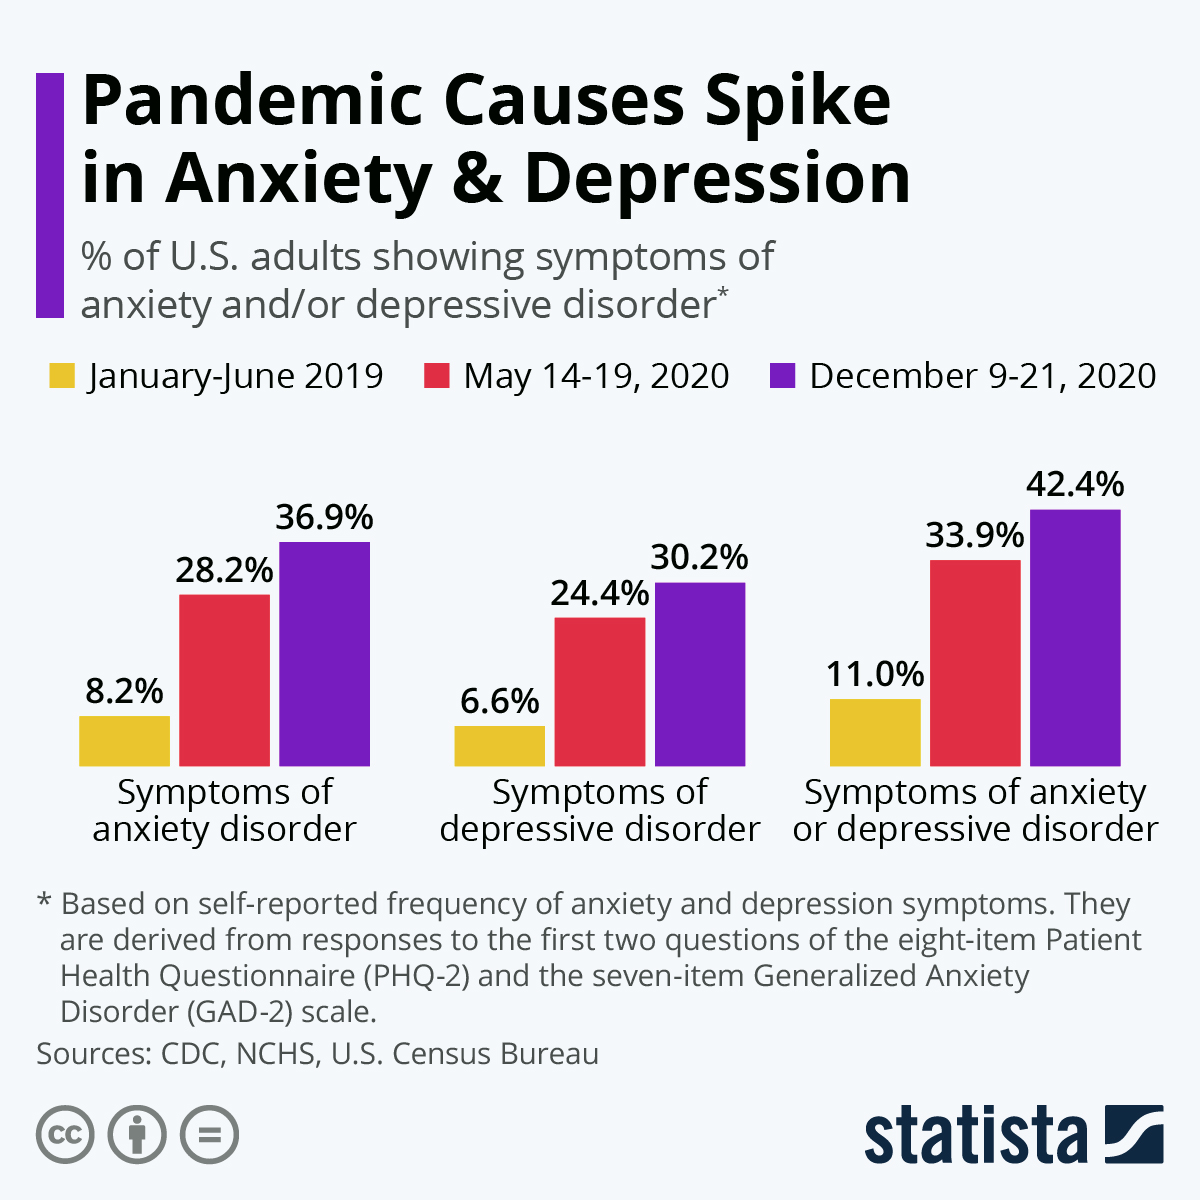 Pandemic Causes Spike in Anxiety & Depression